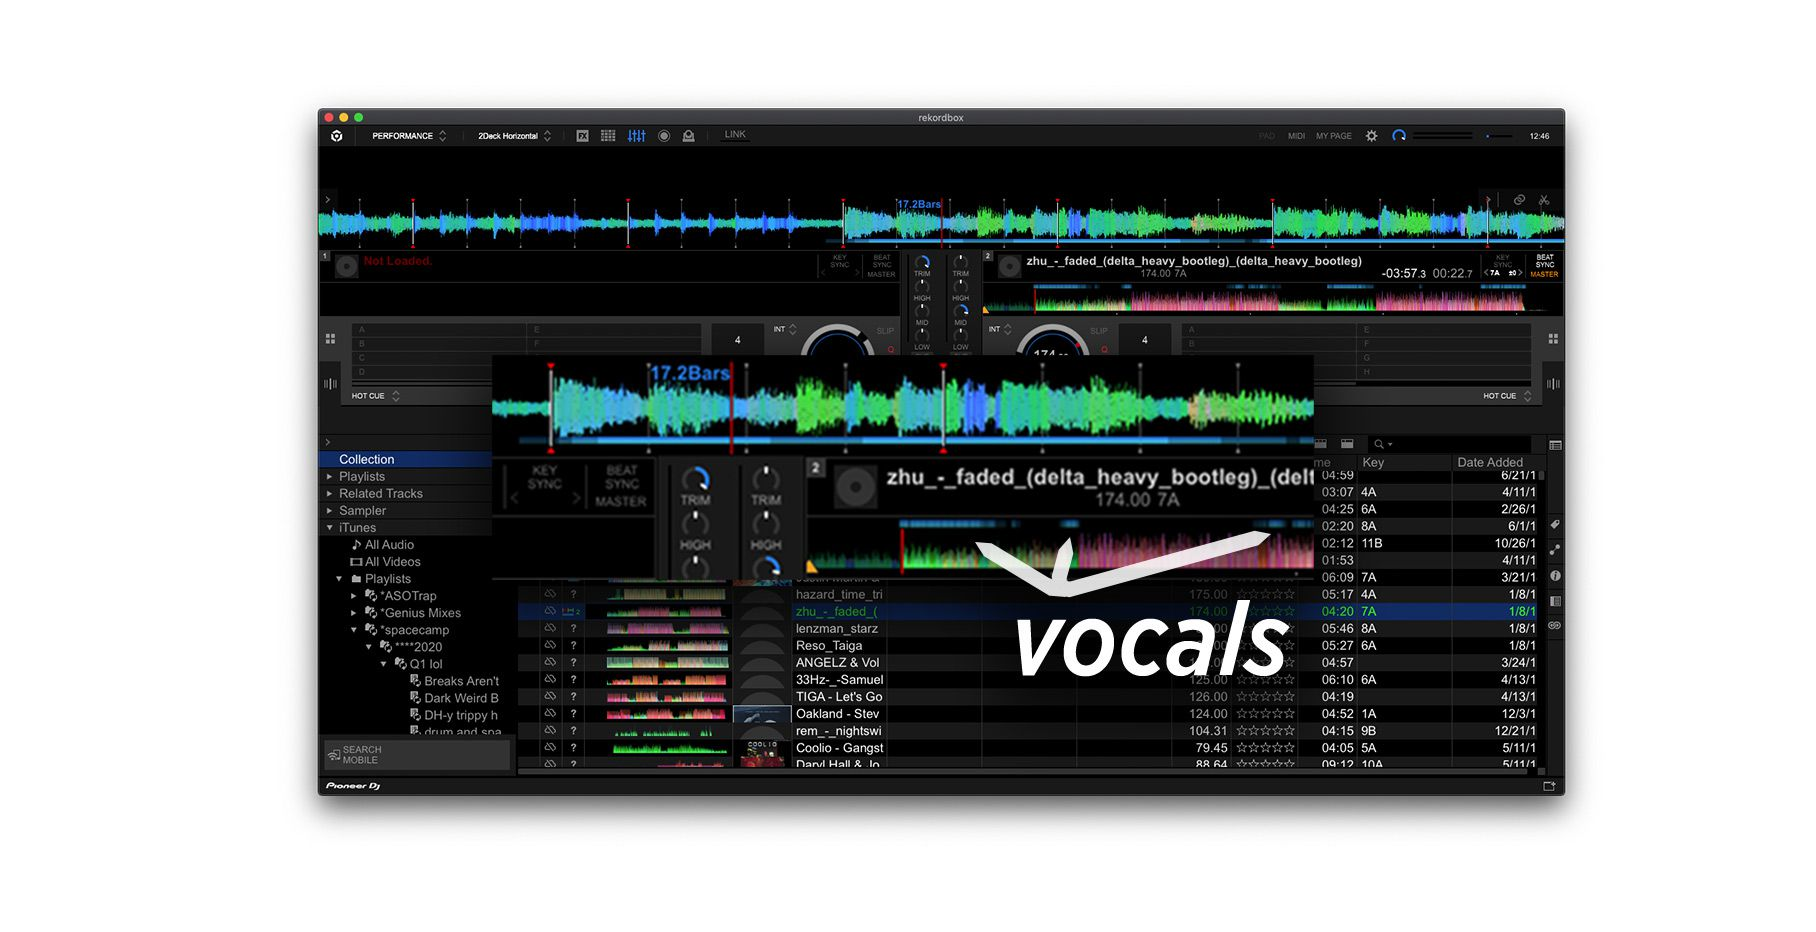 Vocal Detection in rekordbox 6.0.1